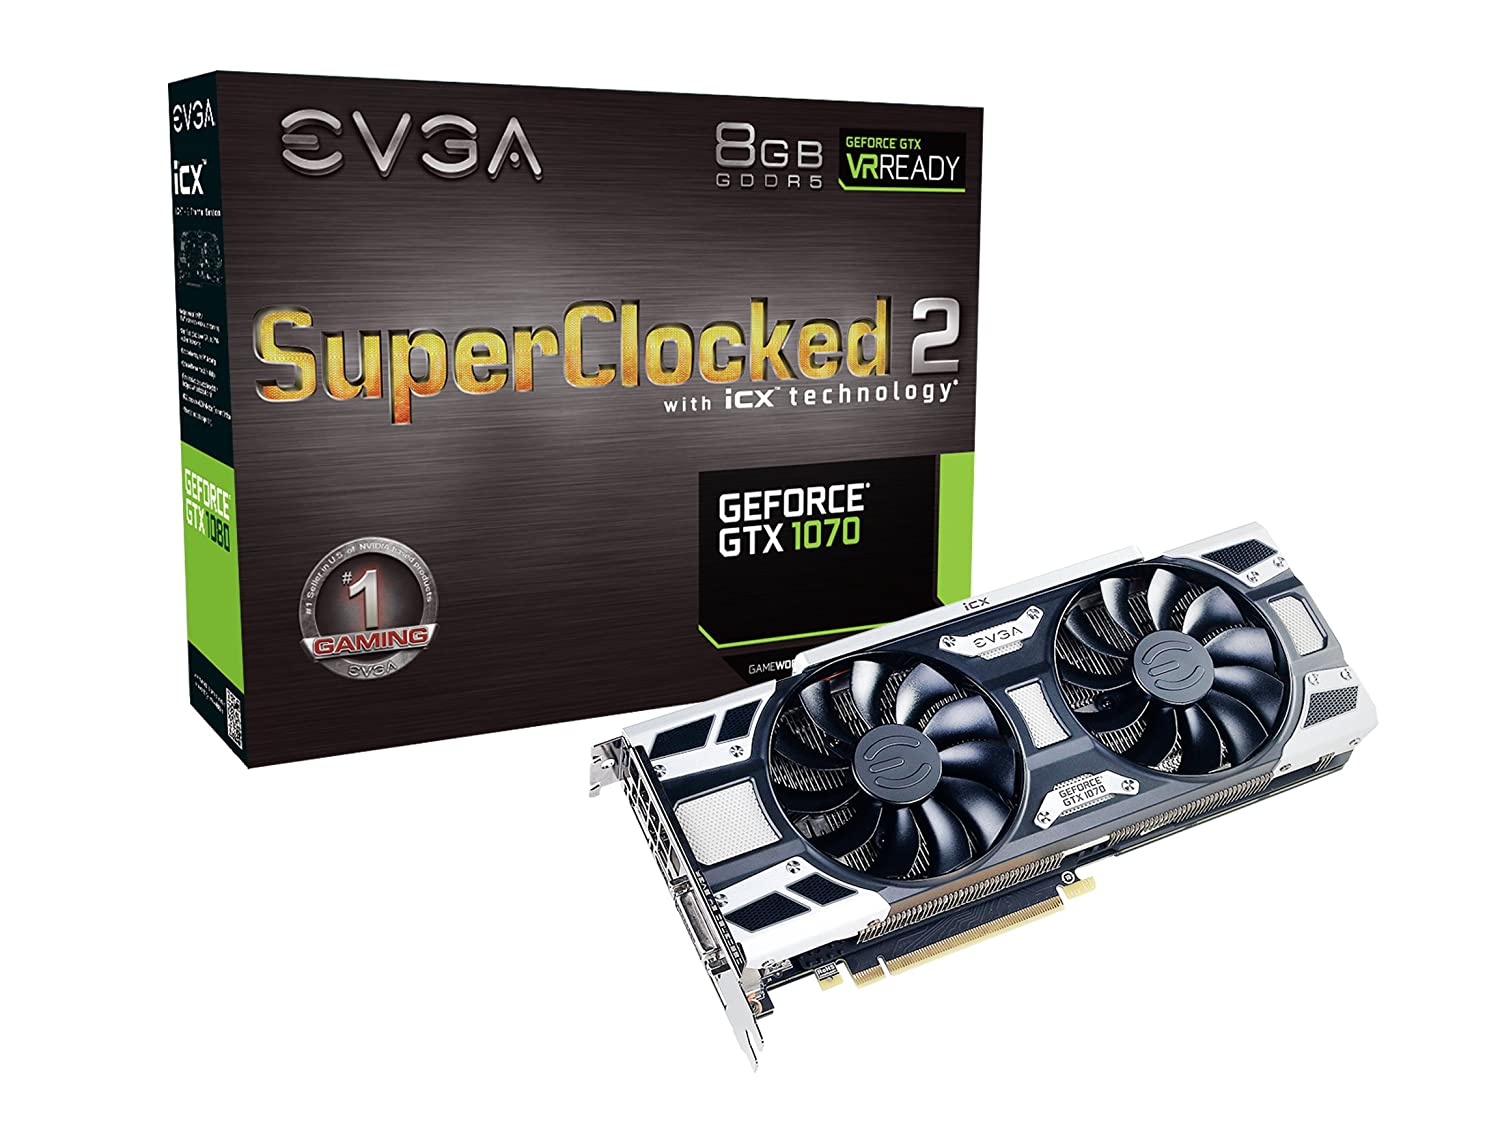 Amazon.com: EVGA GeForce GTX 1070 SC2 Gaming, 8GB GDDR5, iCX Technology - 9  Thermal Sensors, Asynch Fans, Optimized Airflow Design Graphics Card ...